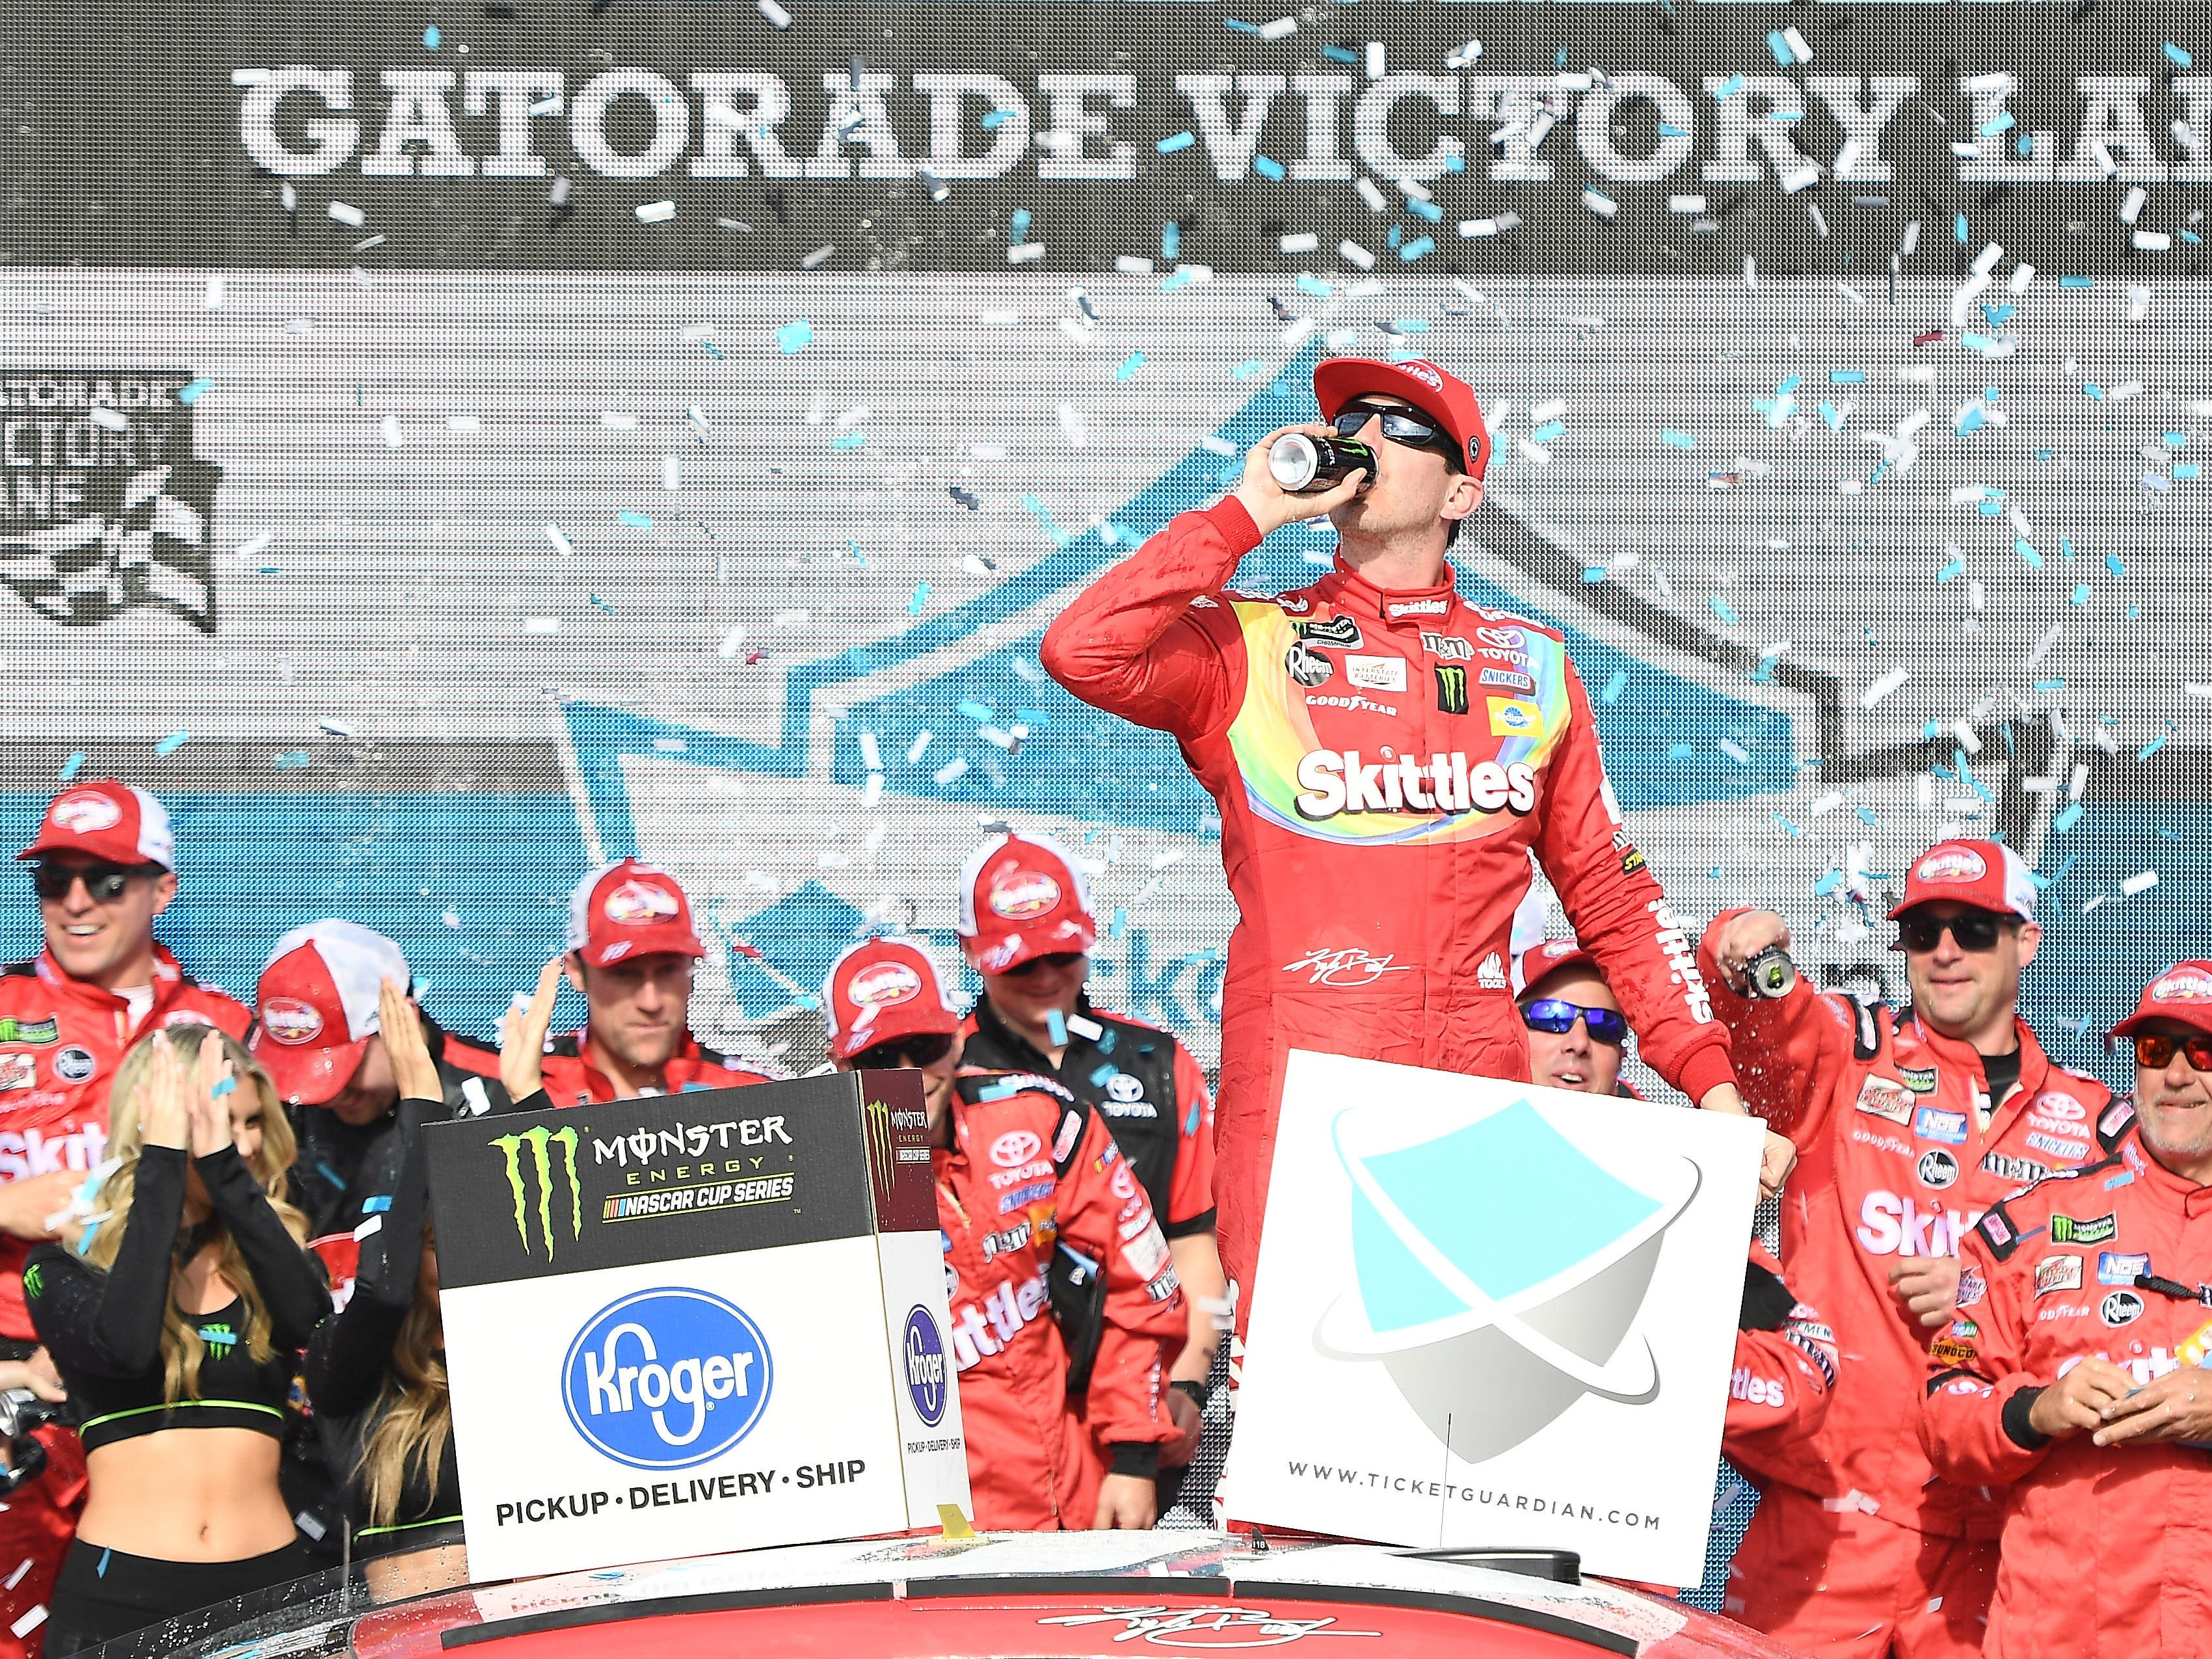 AVONDALE, AZ - MARCH 10:  Kyle Busch, driver of the #18 Skittles Toyota, celebrates in Victory Lane after winning the Monster Energy NASCAR Cup Series TicketGuardian 500 at ISM Raceway on March 10, 2019 in Avondale, Arizona.  (Photo by Stacy Revere/Getty Images)